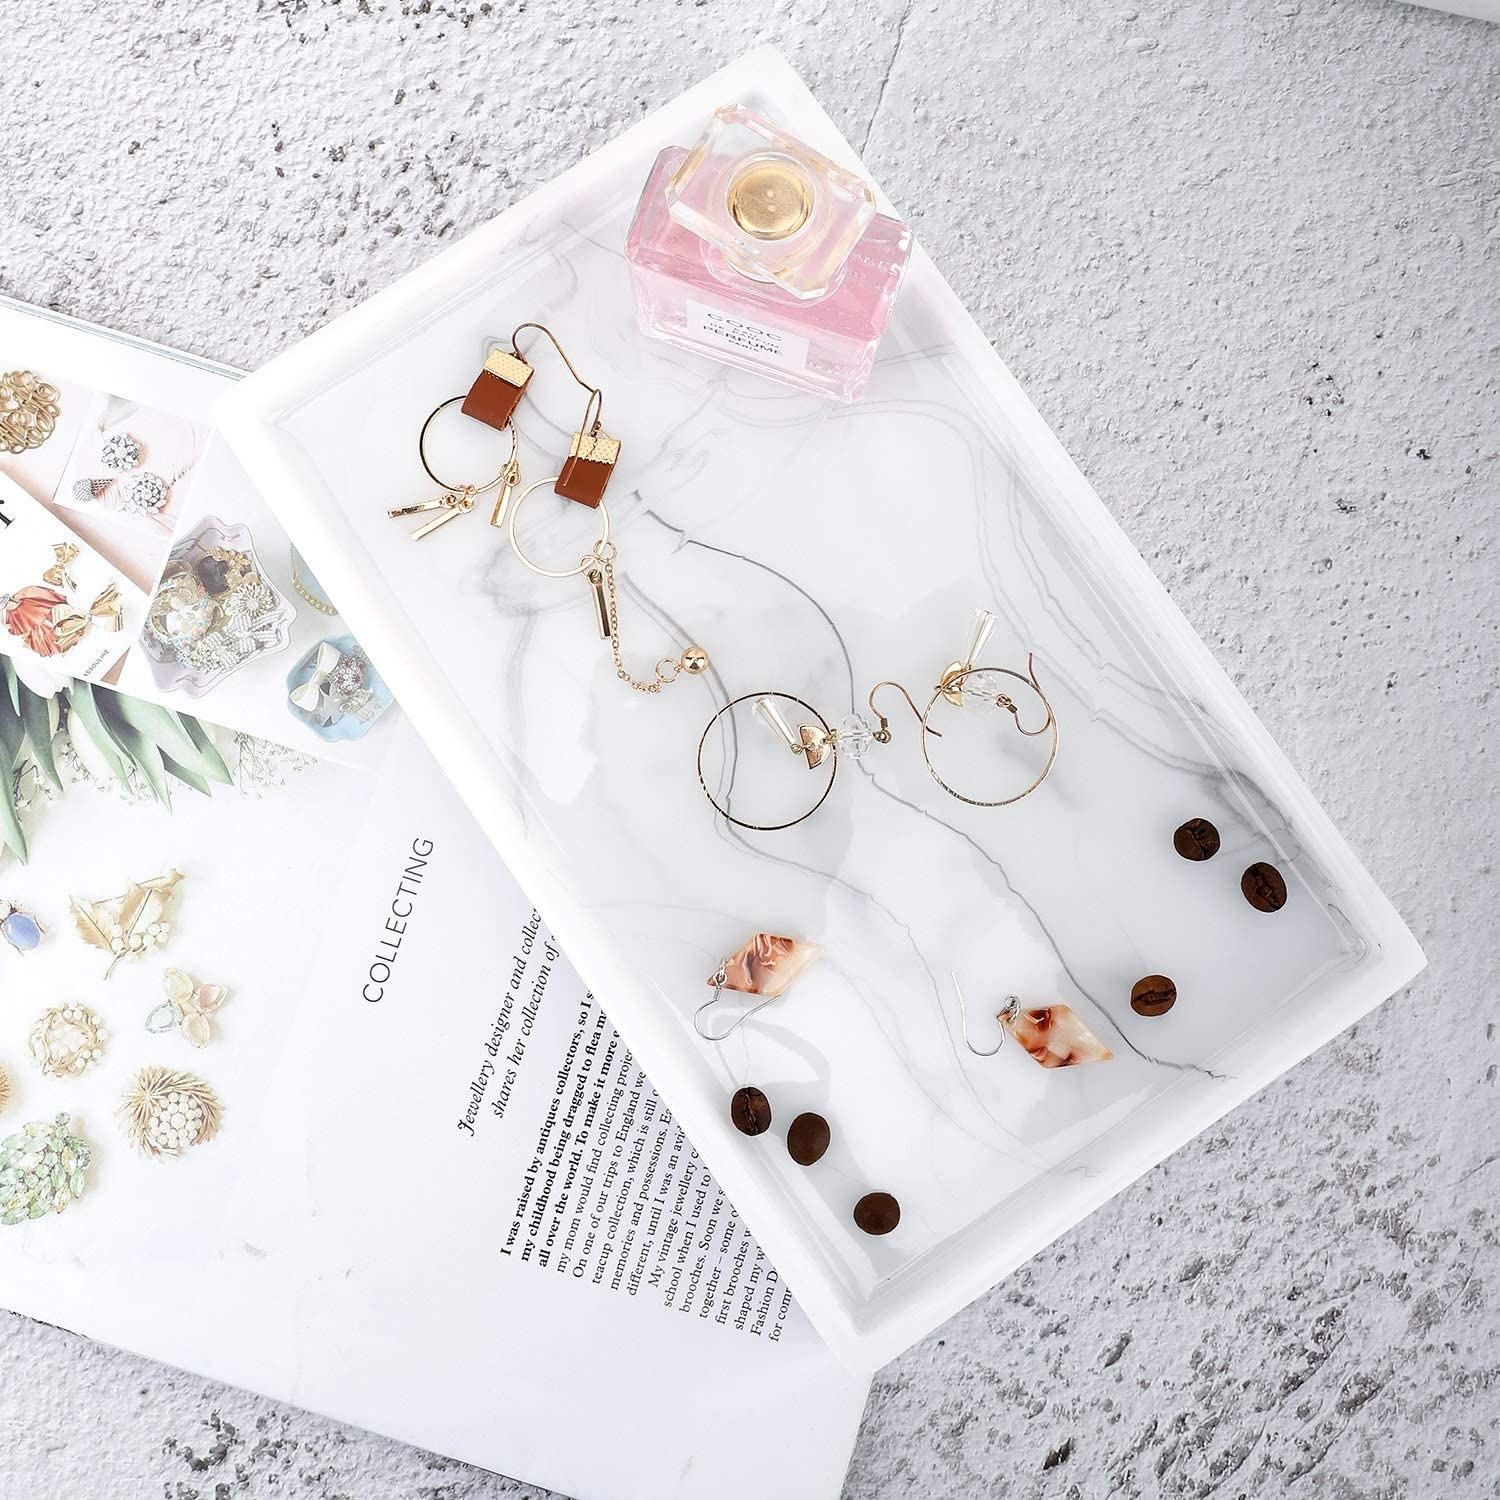 Jewelry laid out on the marble tray